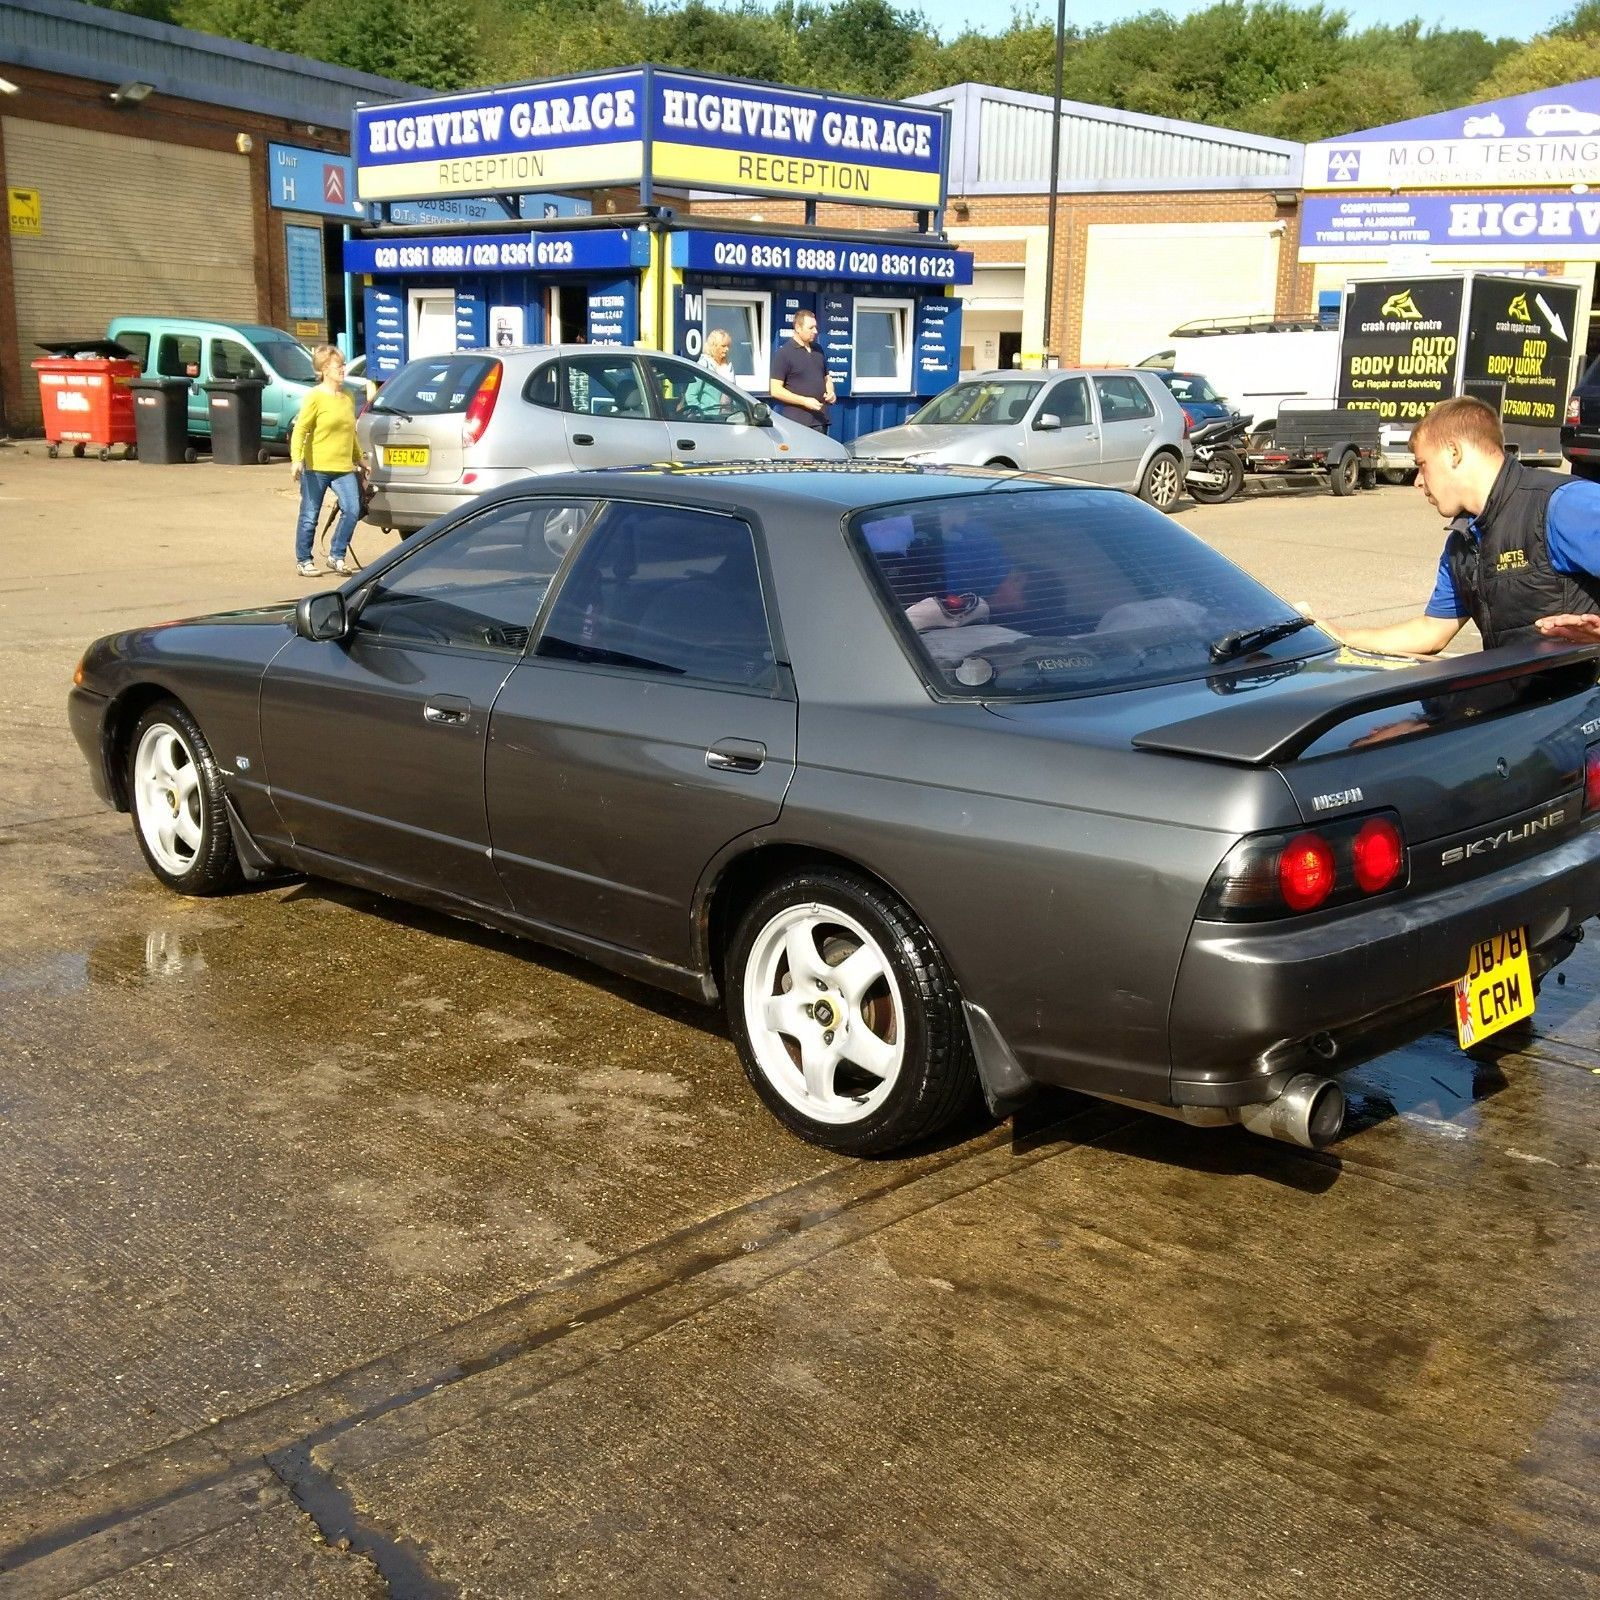 Looking For A Nissan Skyline R32 4 Door Turbo Gts Awd Attesa Aws Hicas All Stock Oem This One Is On Ebay